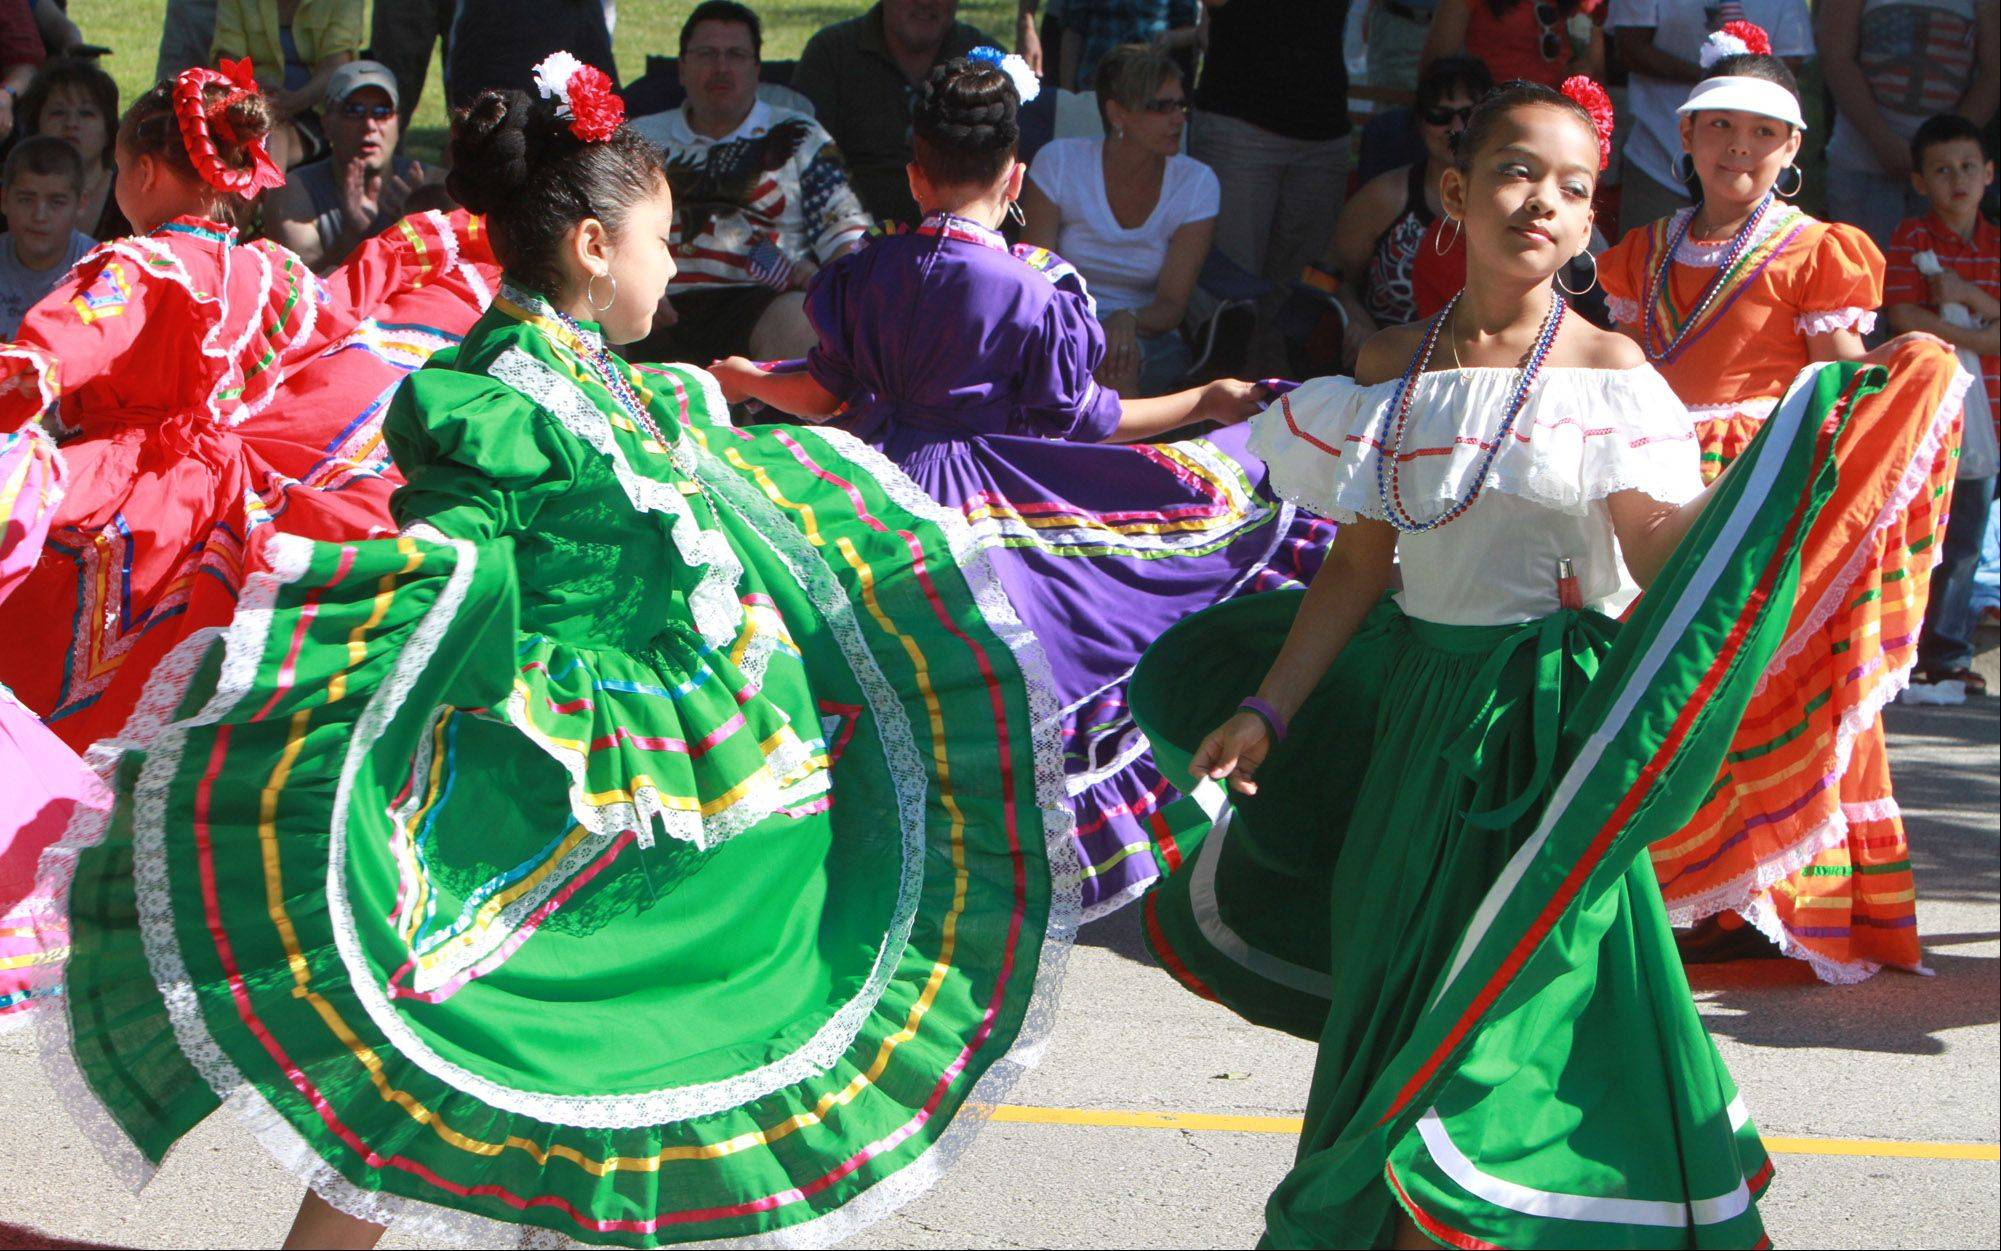 Grupo Folklorica Quetzal dances in the Hoffman Estates Fourth of July parade on Monday.